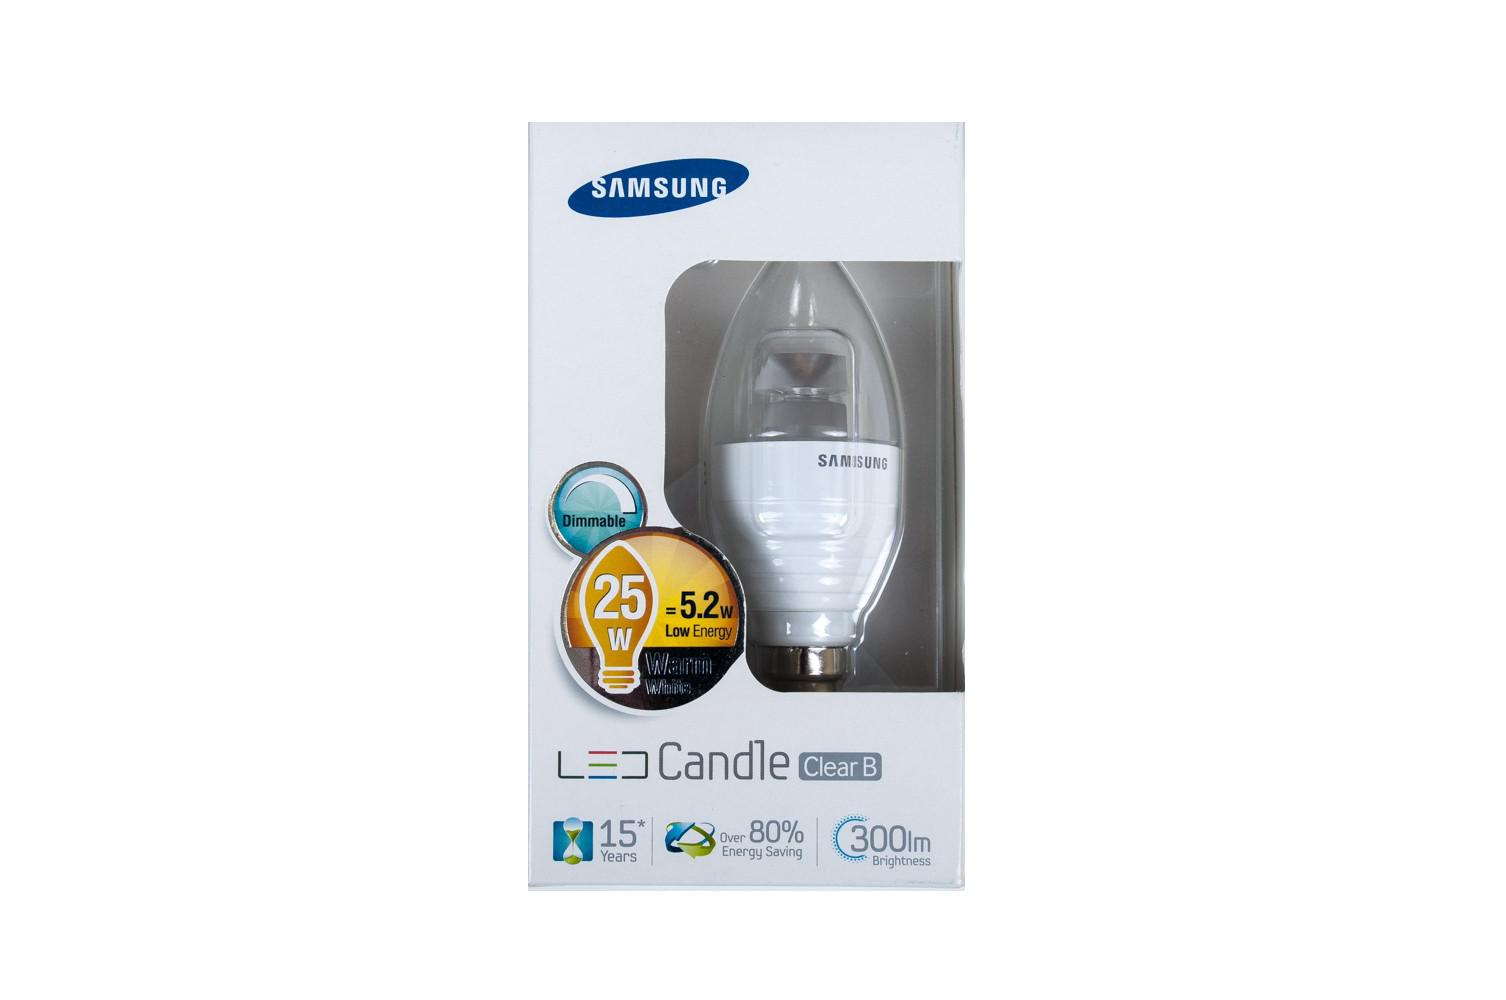 Led lampen e 14 image collections mbel furniture ideen samsung led lampen e14 energiesparlampe e27 leuchtmittel kerze samsung led lampen e14 energiesparlampe e27 leuchtmittel kerze parisarafo Gallery